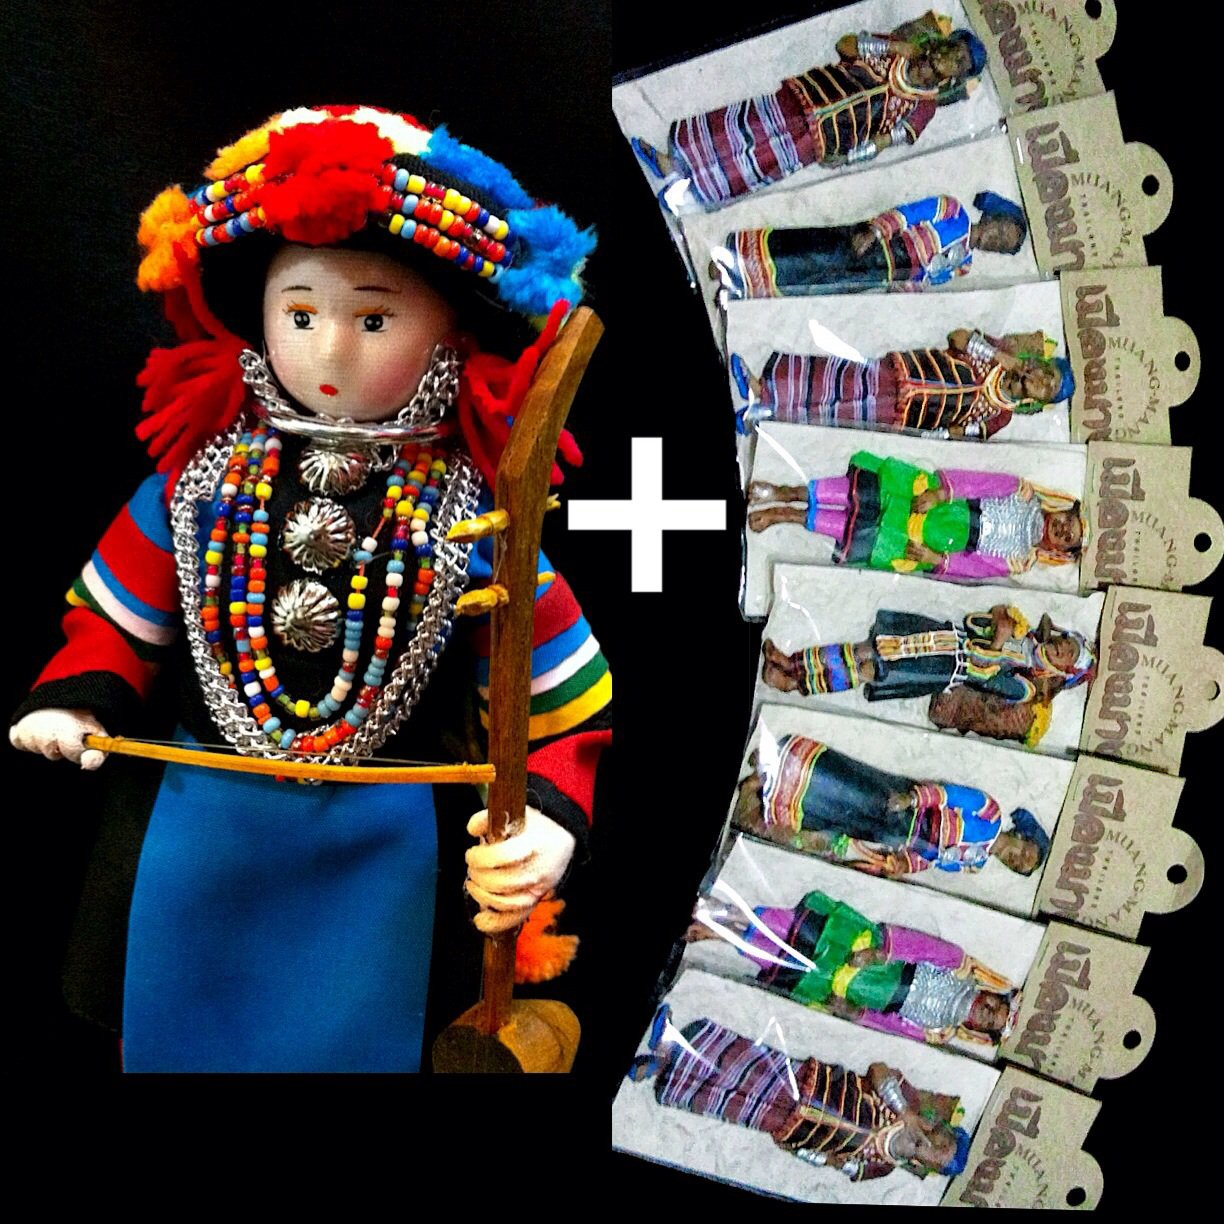 Thai Handmade 'Hill Tribe Doll' Fully Decorated 'Lisu' + 3D Hill Tribe Fridge Magnets' Vintage Sets